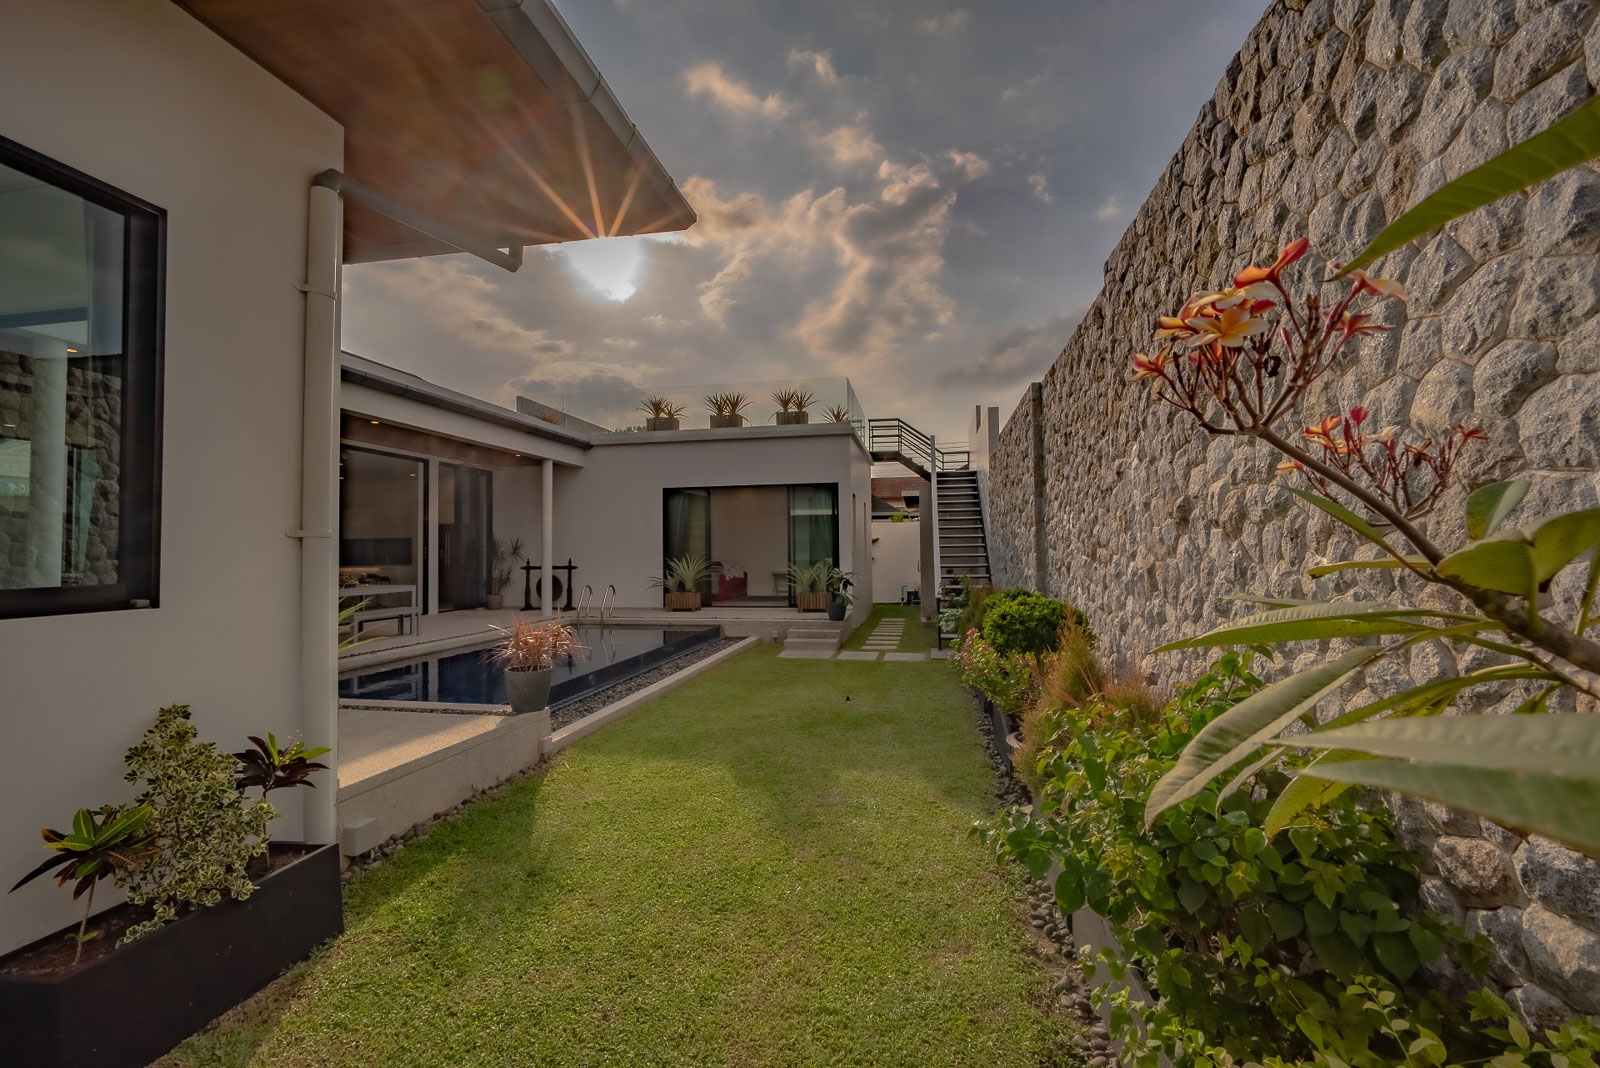 Modern Bright 4 Bedroom Pool Villa With Garden in Cherngtalay, Phuket for Sale